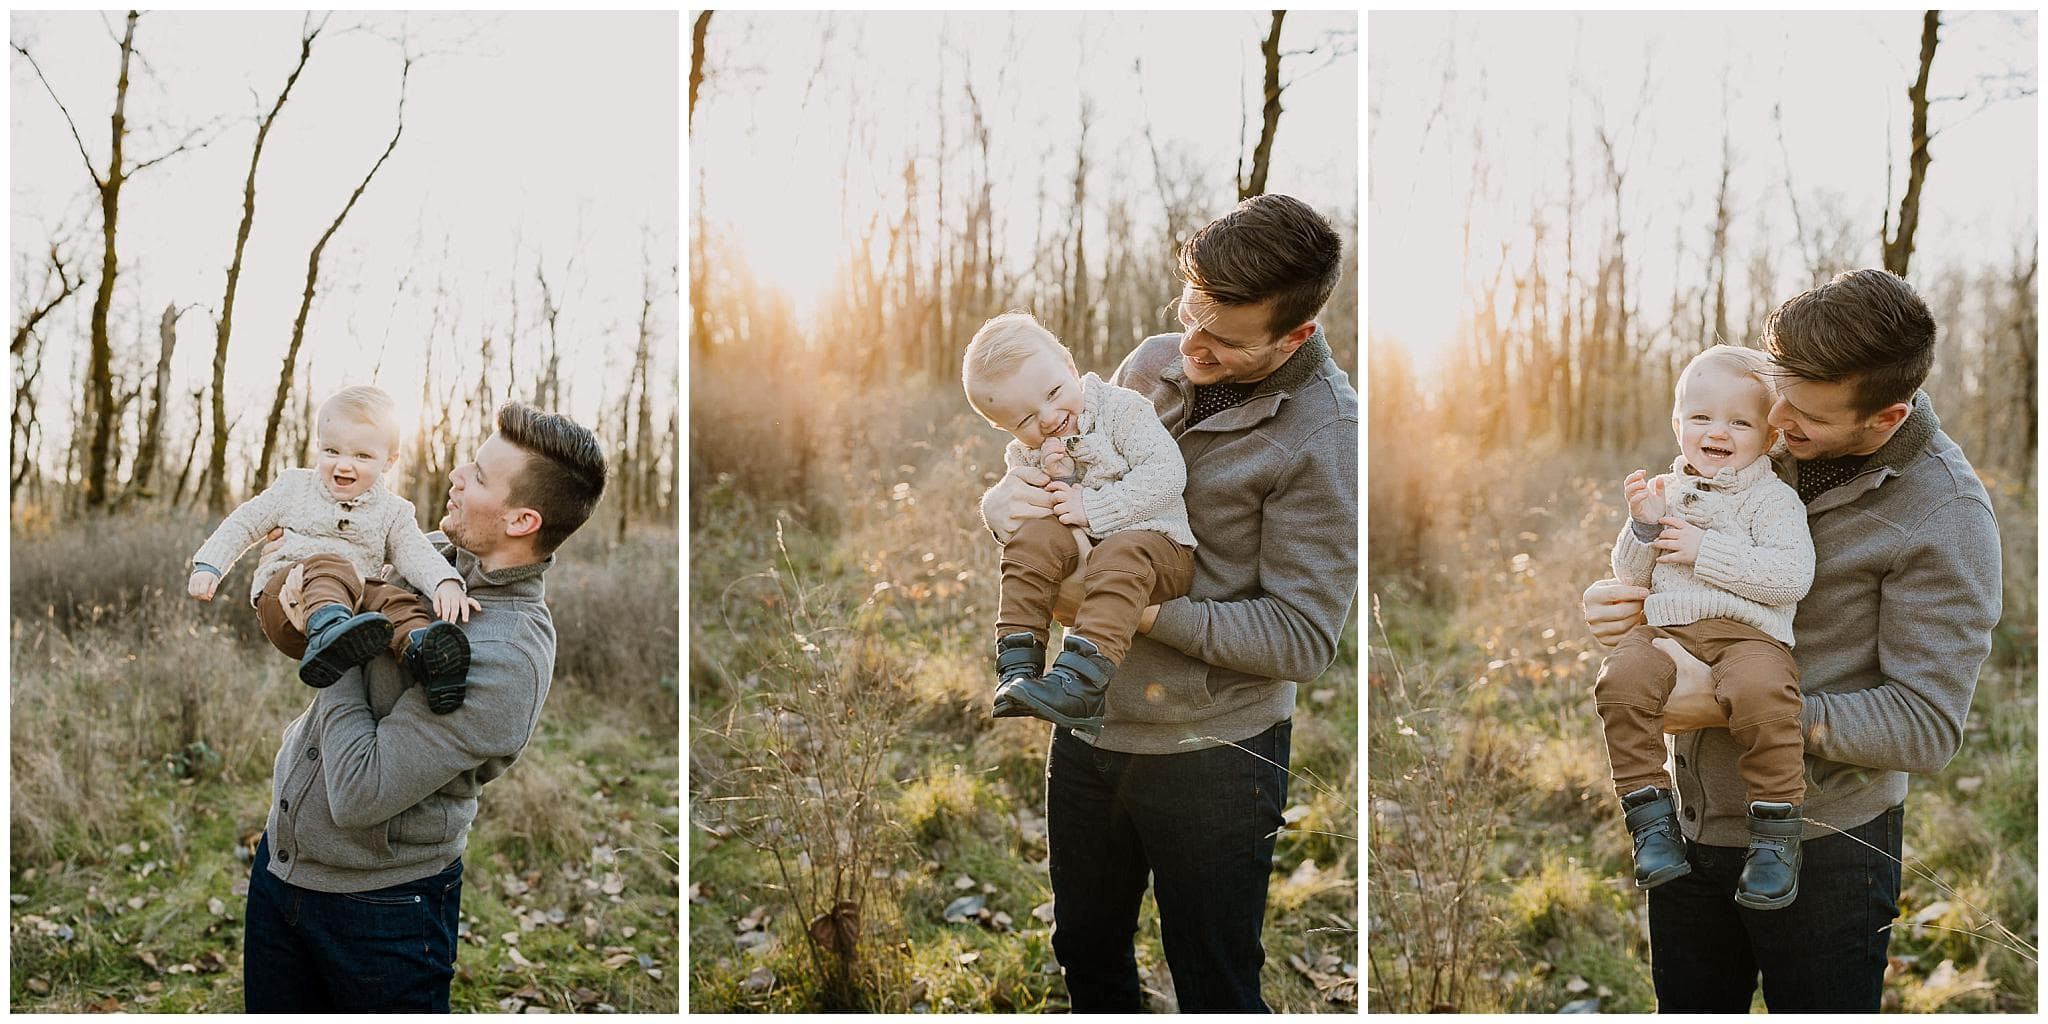 three photos of a dad and toddler son laughing together during lifestyle family photography session